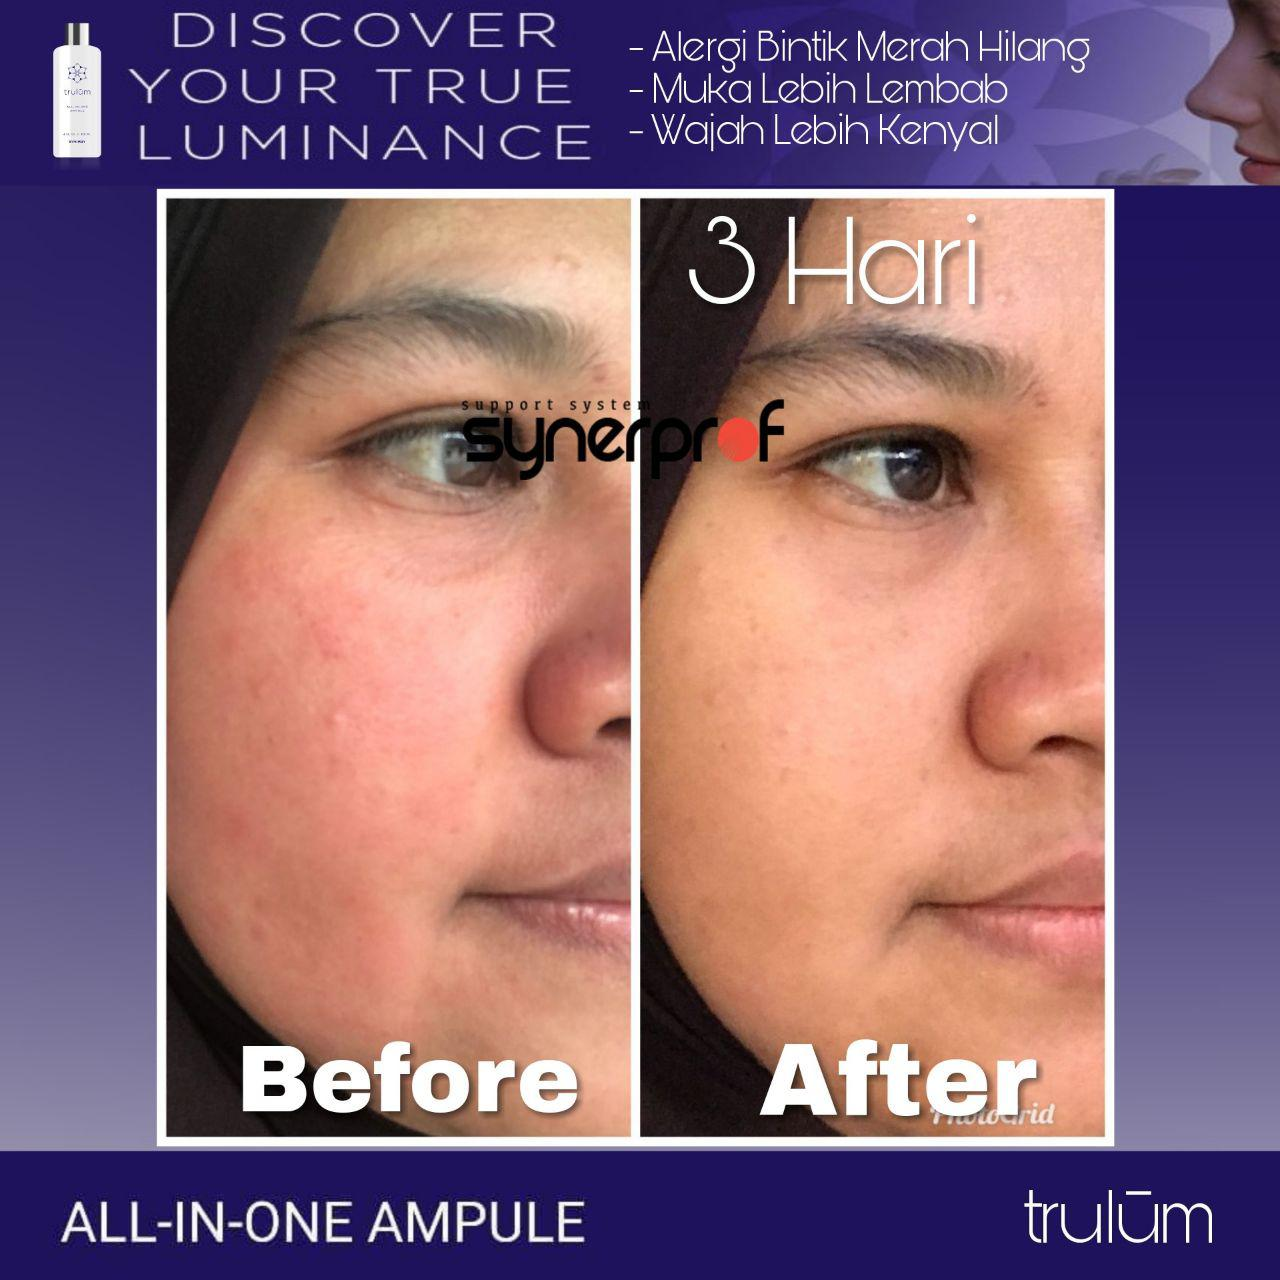 Jual Trulum All In One Ampoule Di Muara Padang WA: 08112338376